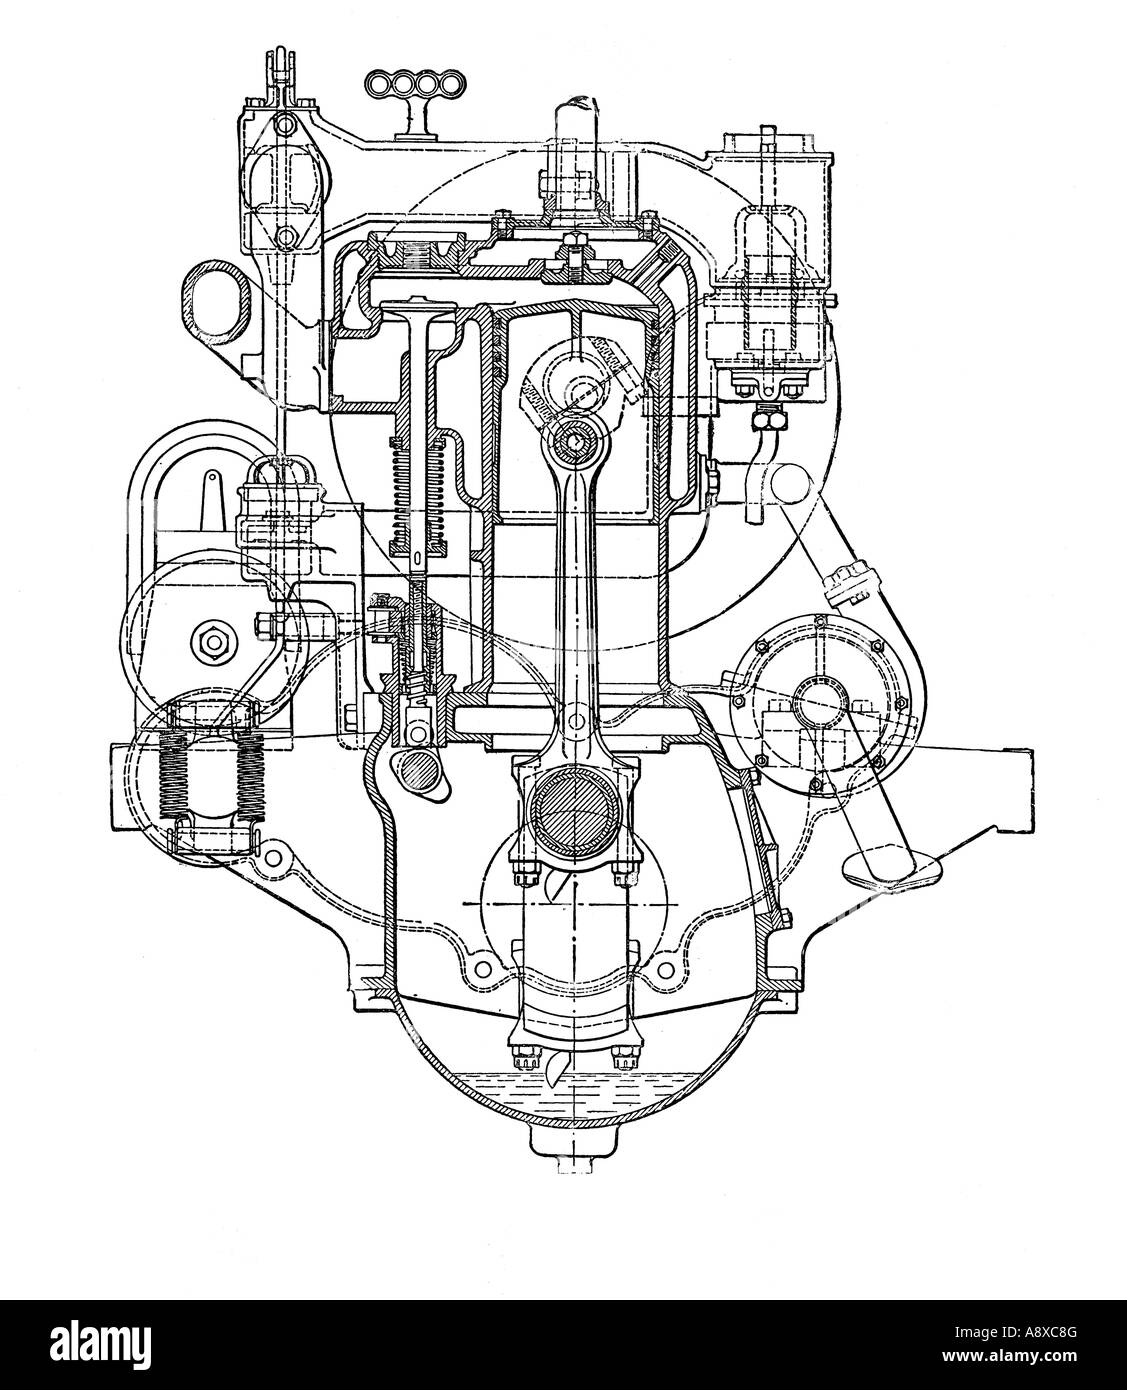 hight resolution of cross section diagram of siddeley four cylinder petrol engine